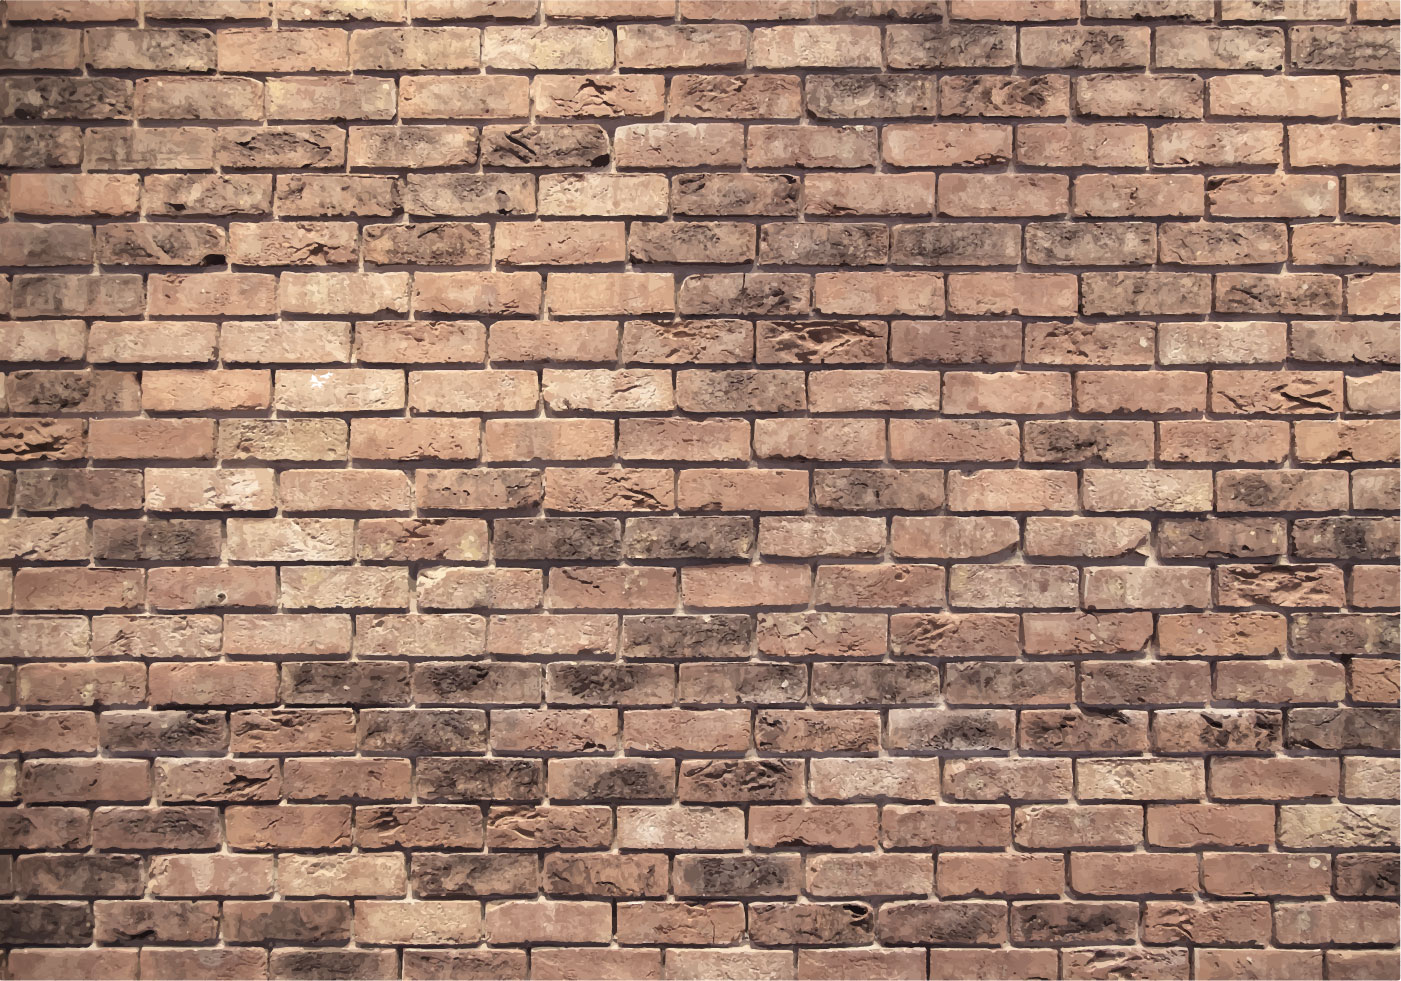 Wall Free Vector Art - (58,592 Free Downloads)